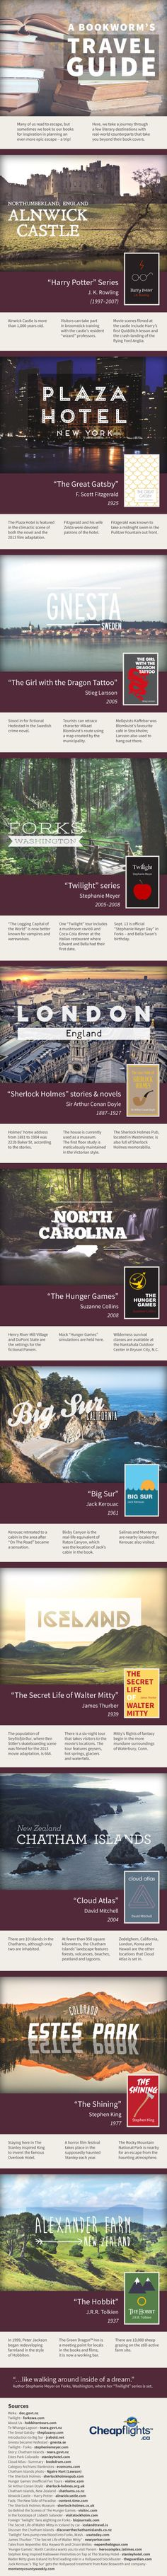 A bookworm's travel guide - infographic  -  The infographic will let you spot places from such books as Stephen King's The Shining, The Girl with the Dragon Tattoo by Stieg Larsson, Stephanie Meyer's Twilight saga, The Hunger Games by Suzanne Collins, or Harry Potter series.  The infographic was prepared for Cheapflights.